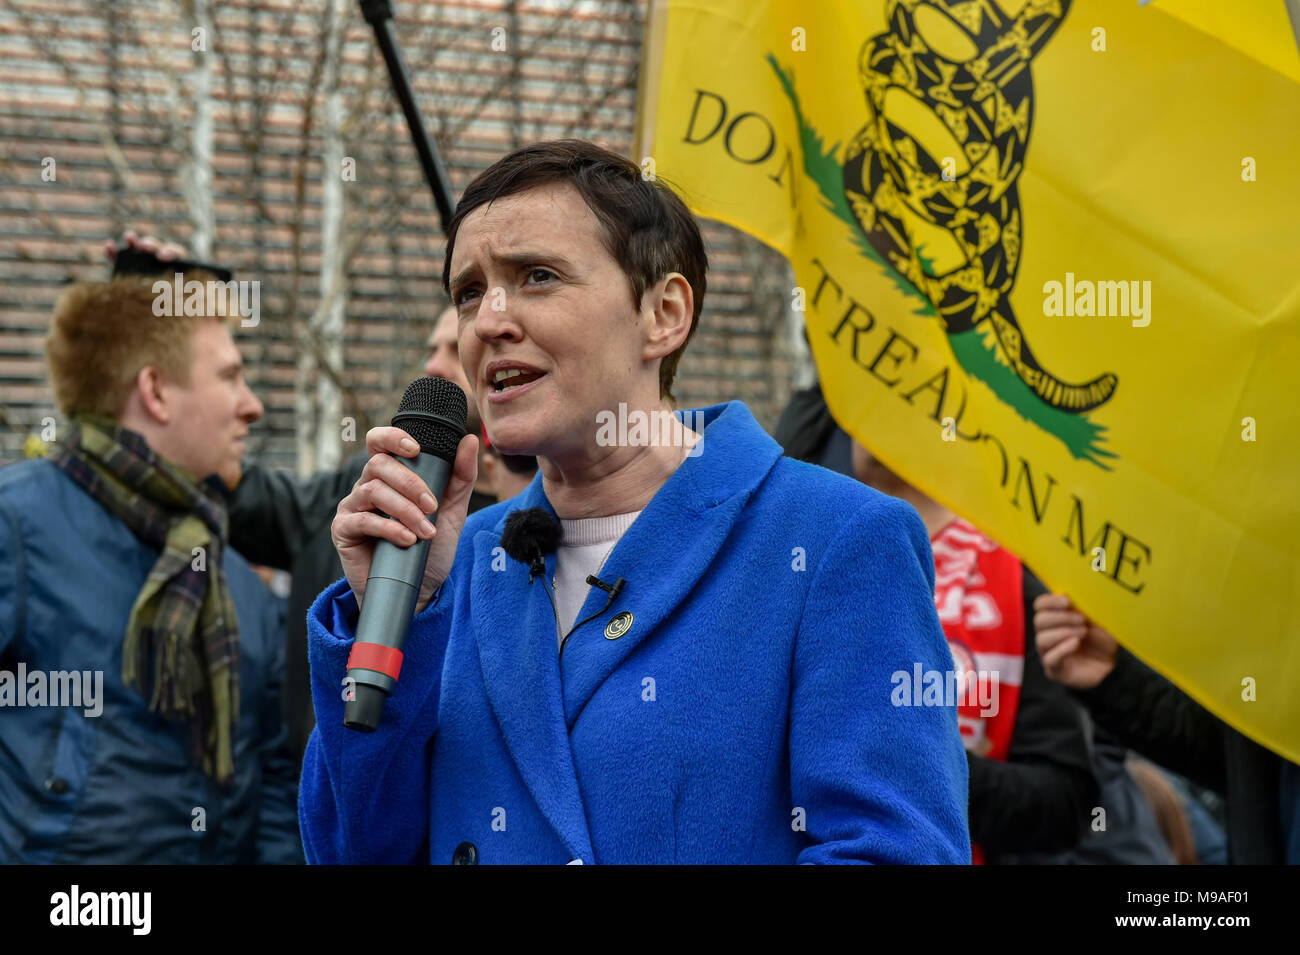 Birmingham, United Kingdom. 24 March 2018. People have gathered for the 'Football Lads Alliance' (FLA) demonstration in Birmingham. There were speeches from John Mieghan, Anne Marie Waters, Luke Nash-Jones and Aline Moraes. After a short march the group dispersed in Edgbaston St. Pictured: Anne Marie Waters  Credit: Peter Manning/Alamy Live News - Stock Image